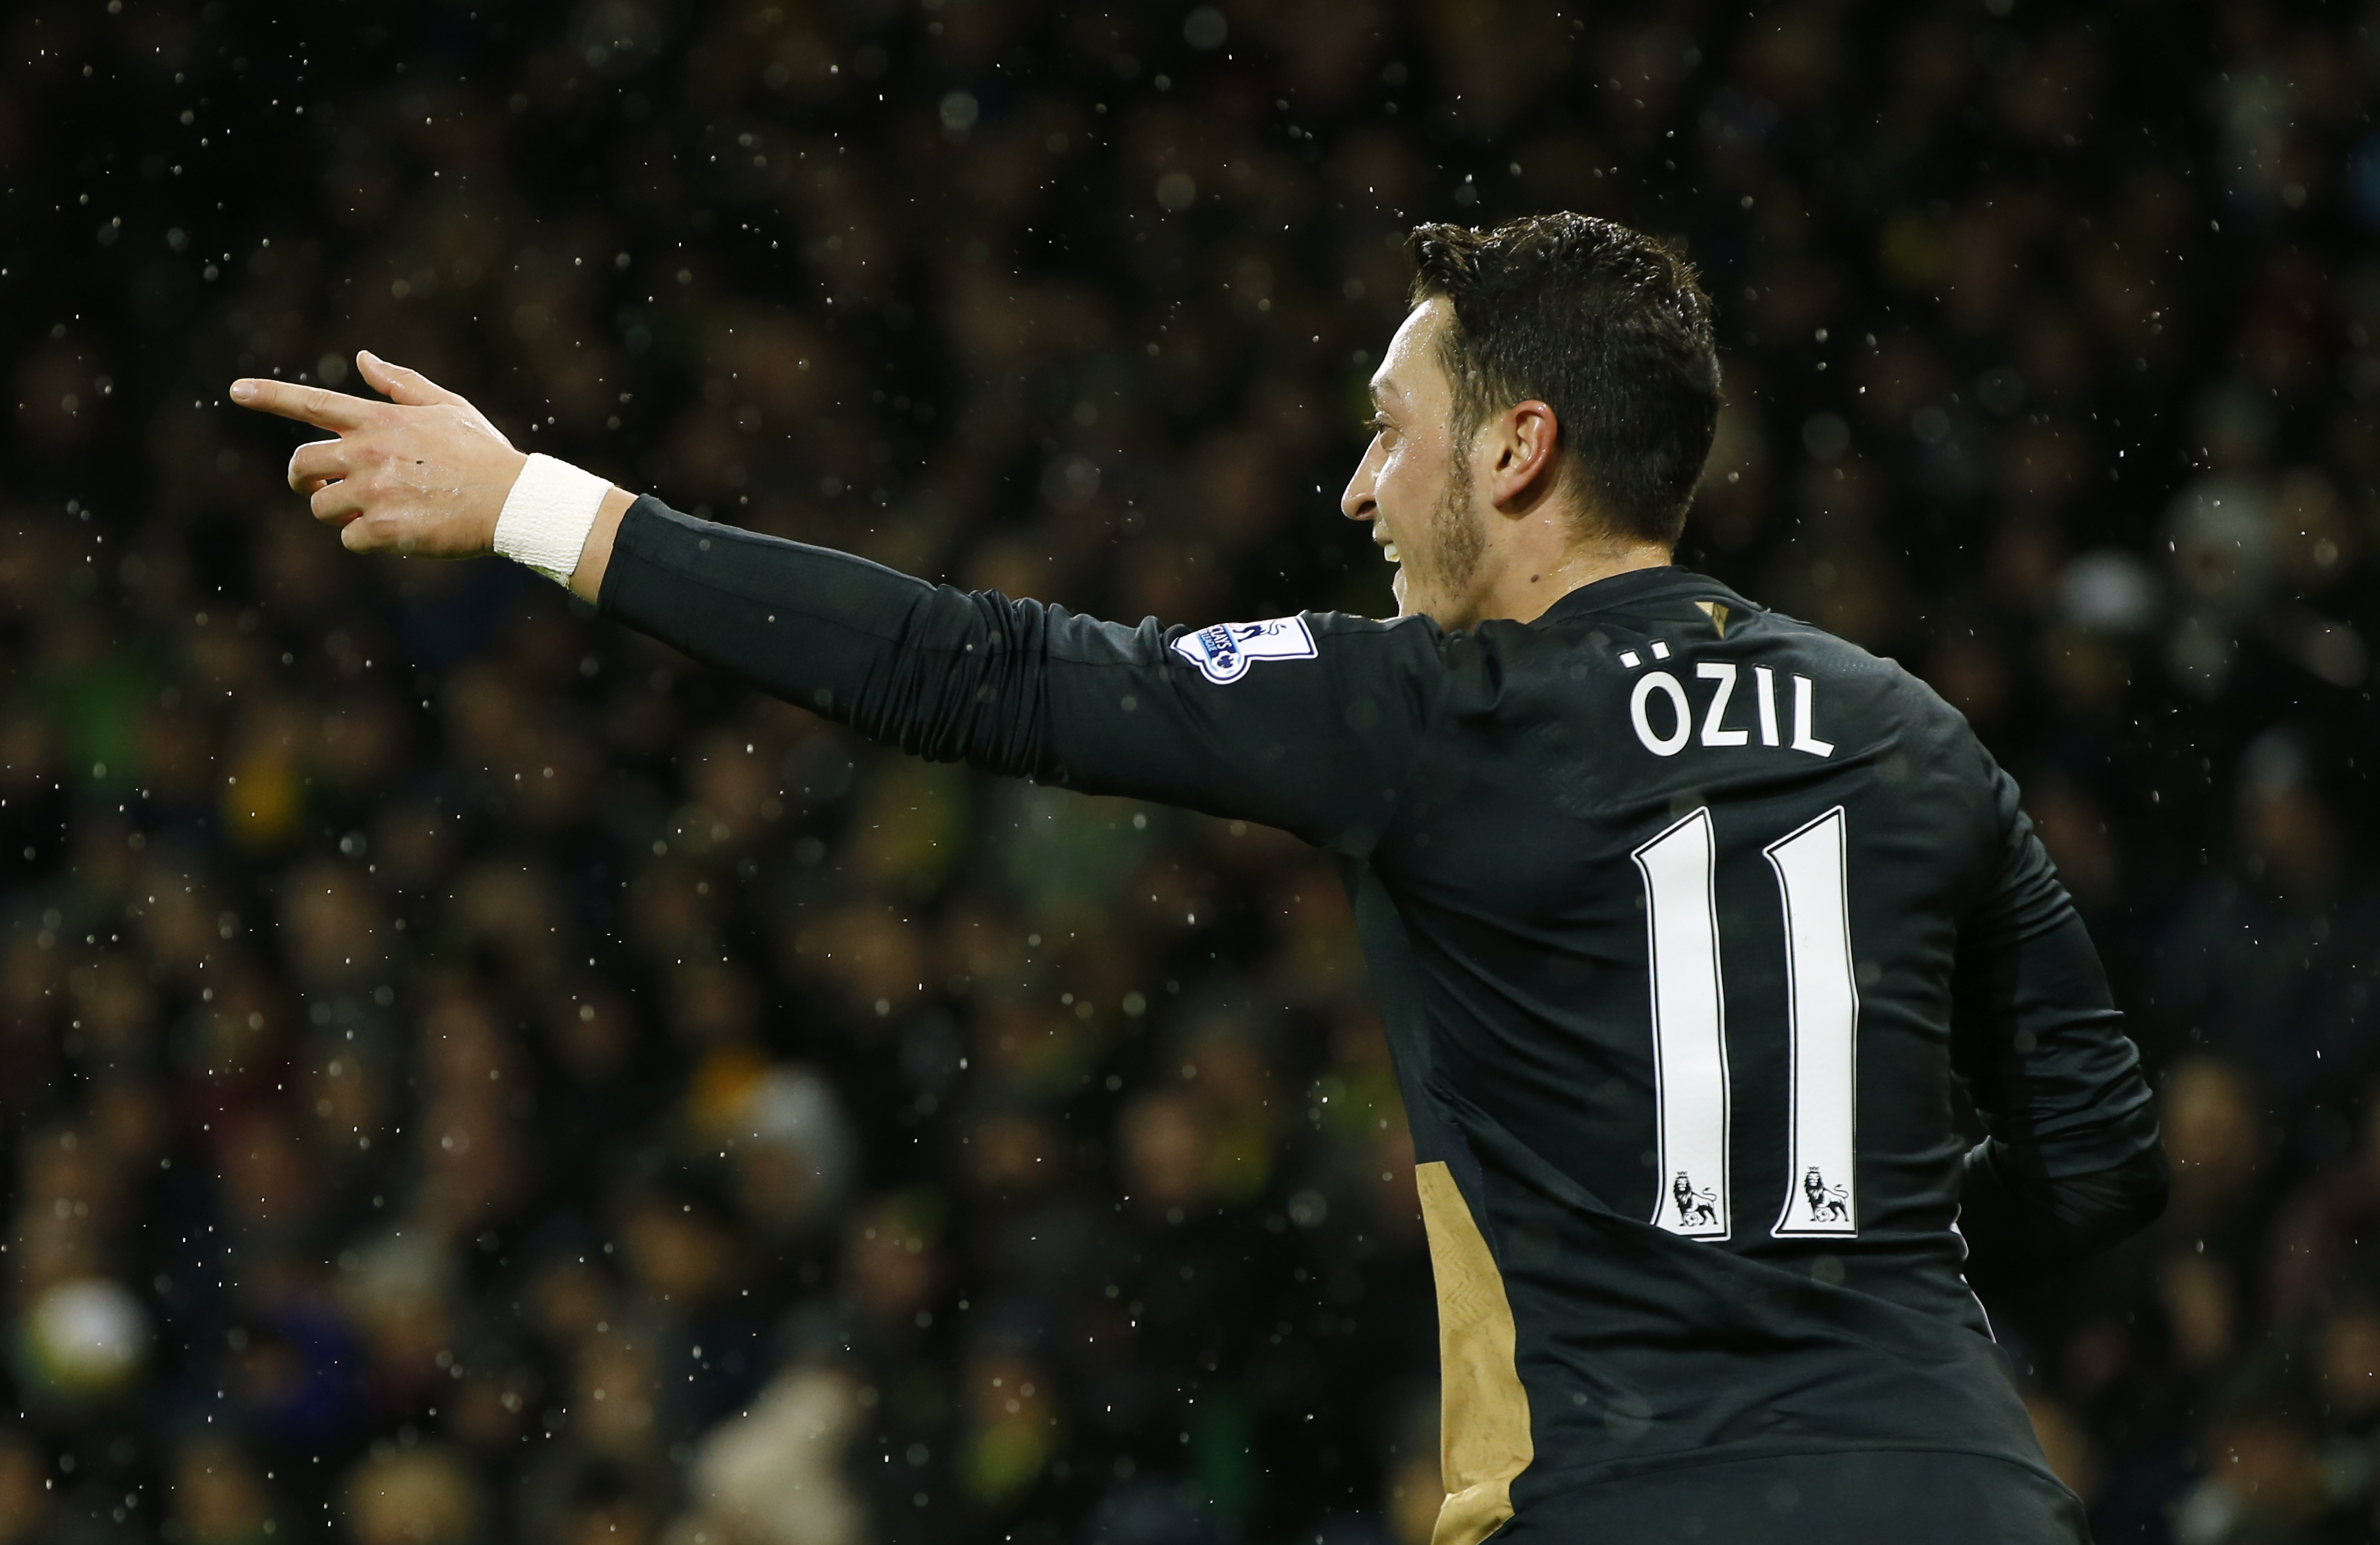 Arsenal's Mesut Ozil celebrates scoring their first goal during Barclays Premier League game against Norwich City at Carrow Raod on November 29, 2015. Photo: Reuters